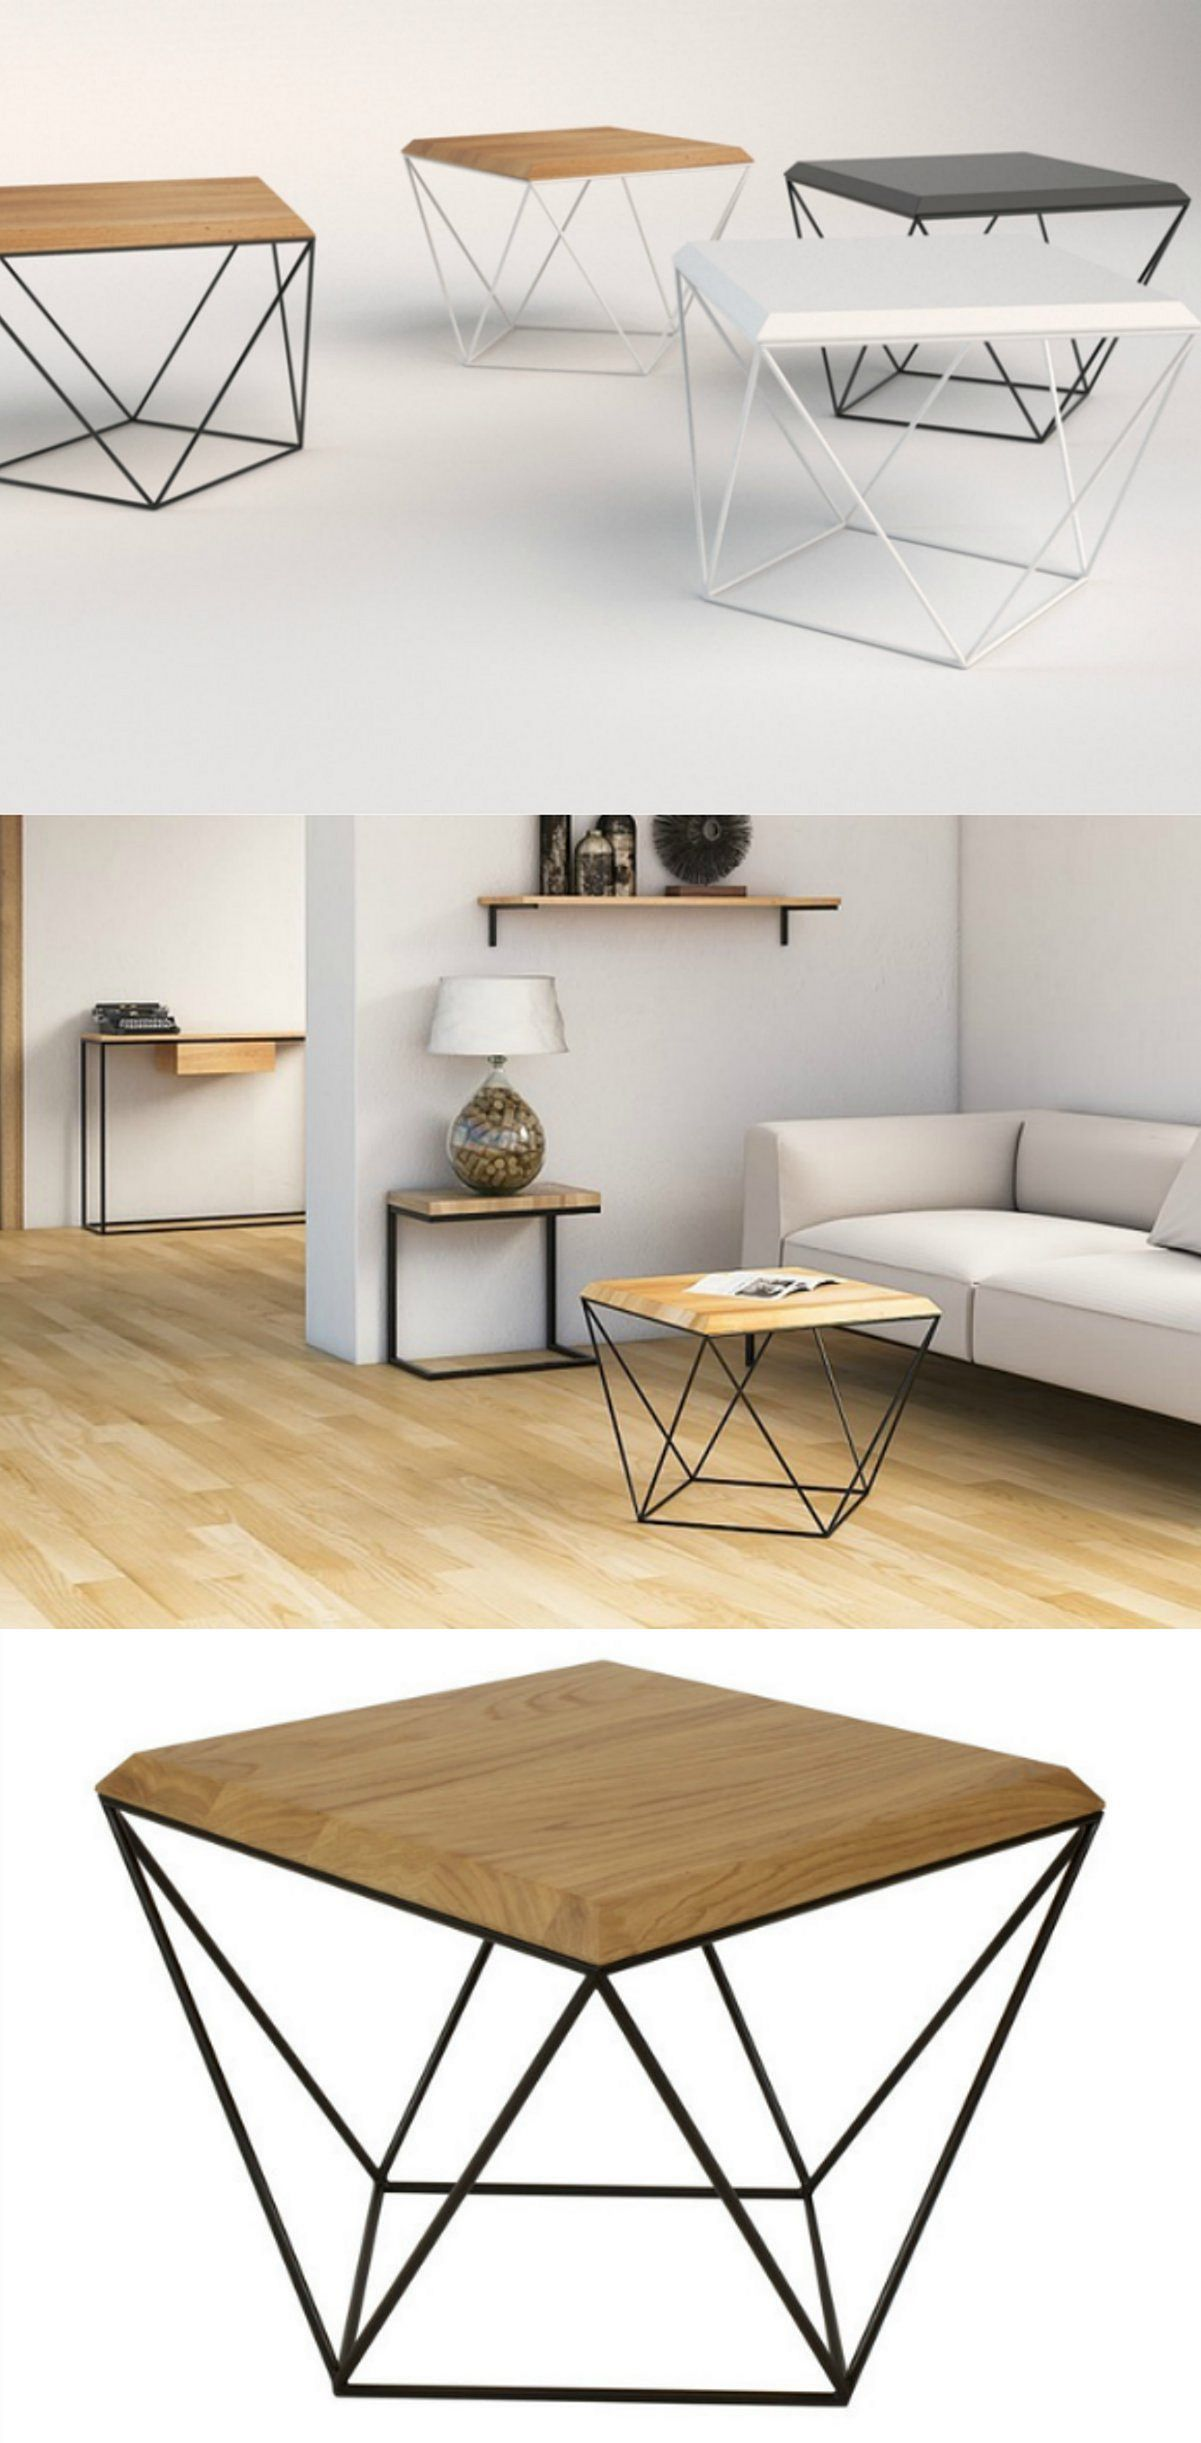 cheap minimalist furniture.  minimalist 35 stunning minimalist furniture design ideas for your home and apartment on cheap h